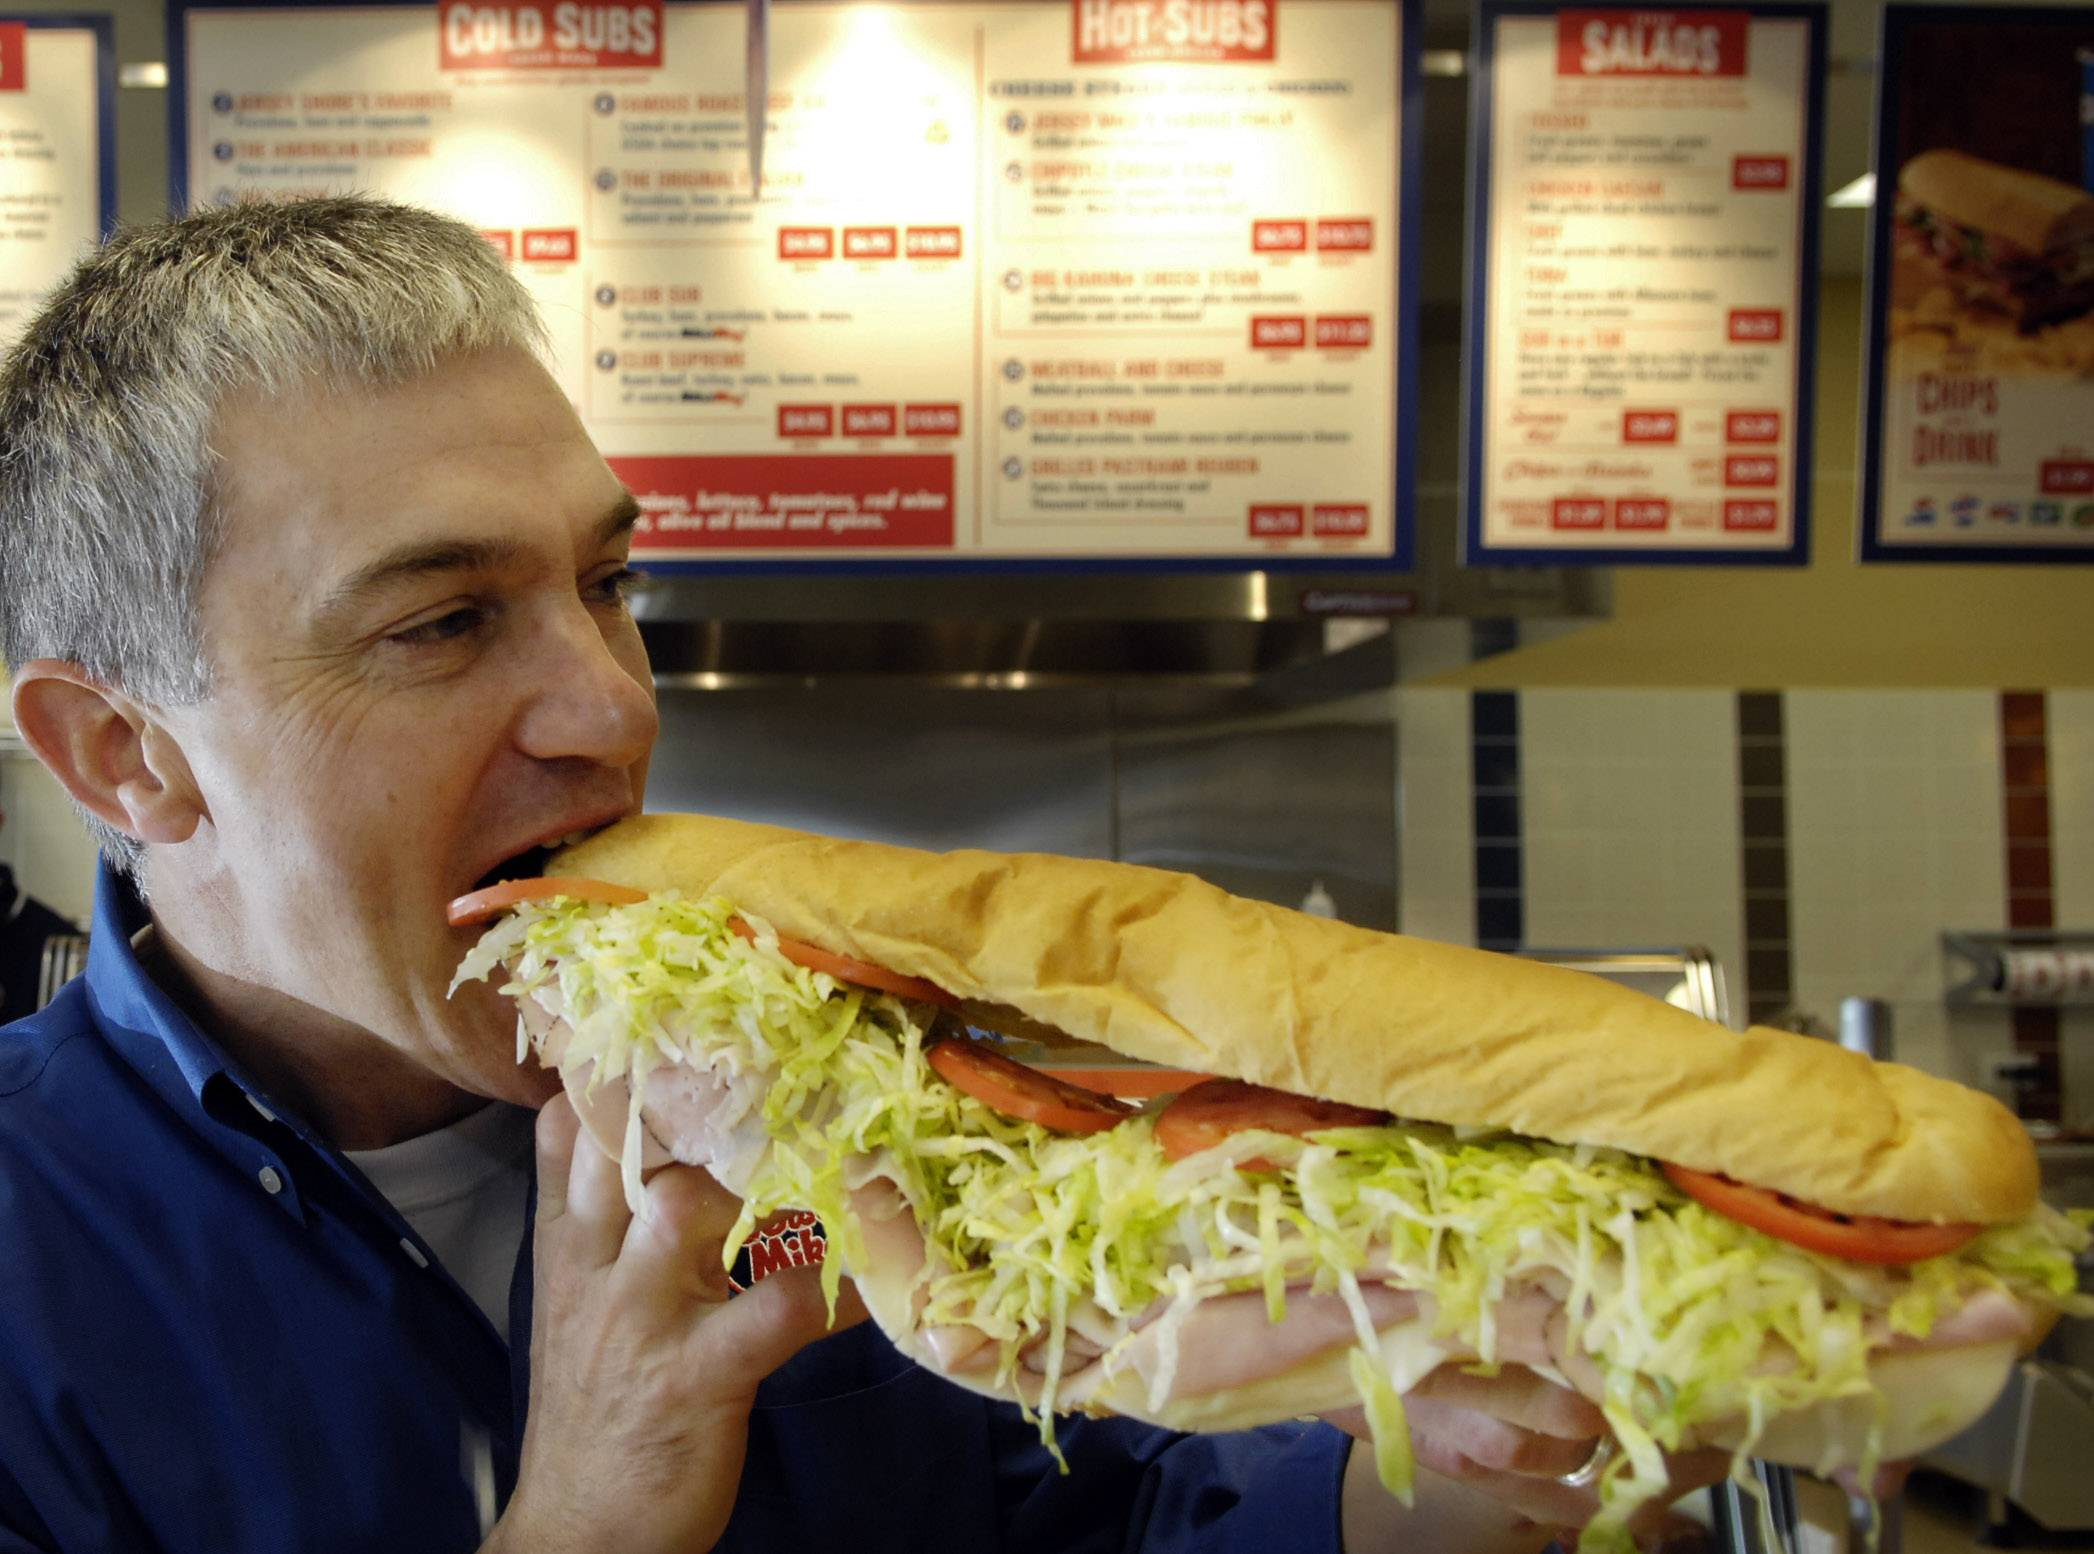 Jim Shipman is planning to open his ninth Jersey Mike's Subs location next week.